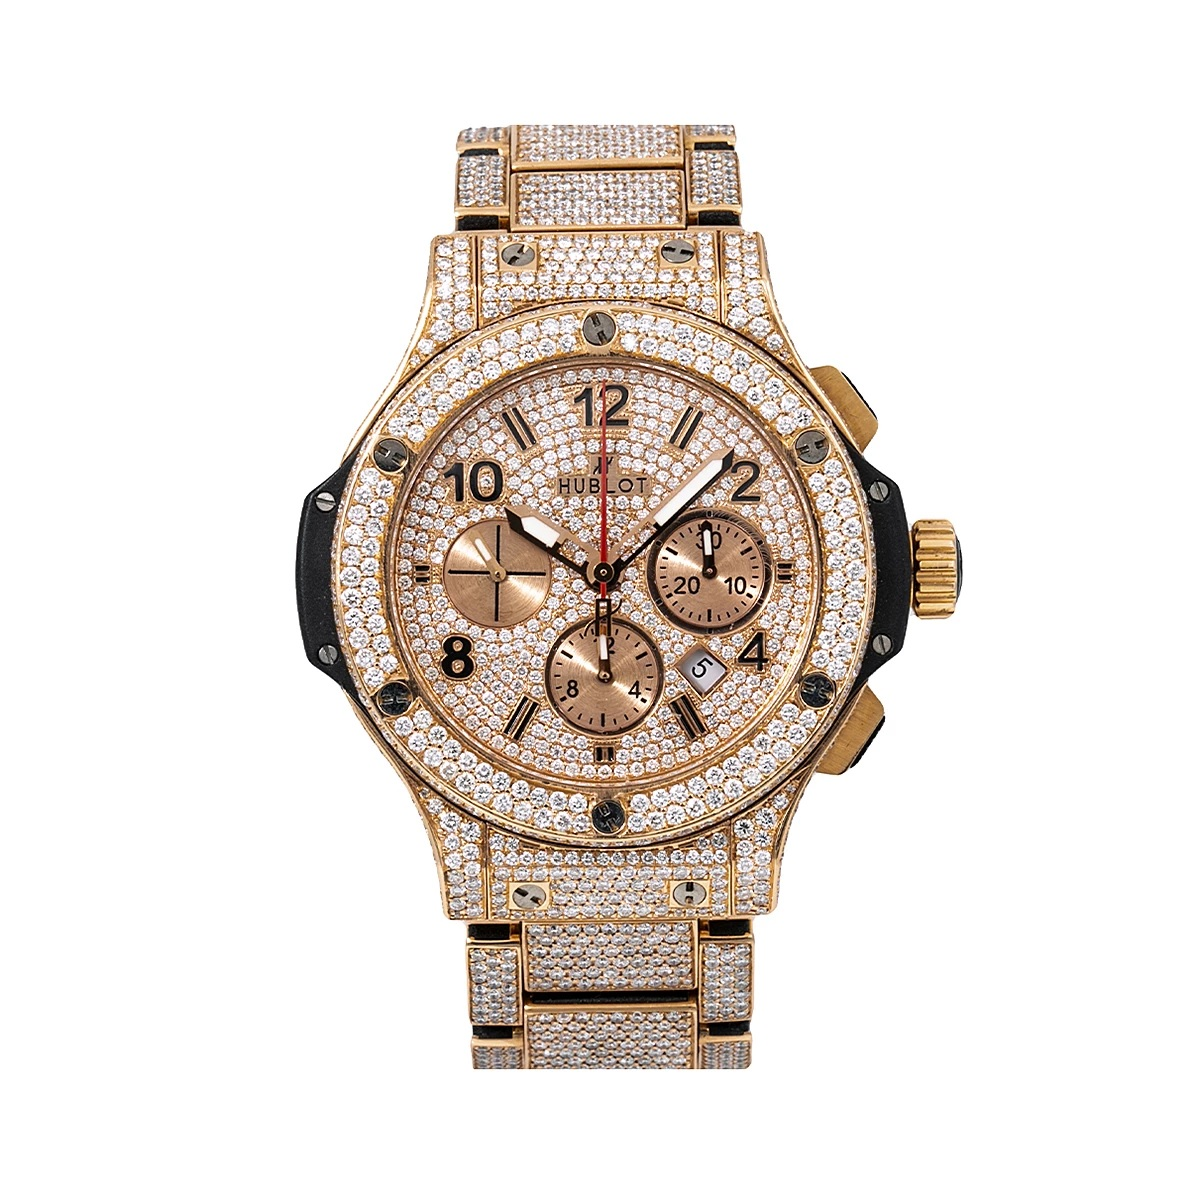 44mm Hublot Mens Diamond Watch Fully Iced Out Big Bang in Rose Gold 18.09ct Main Image